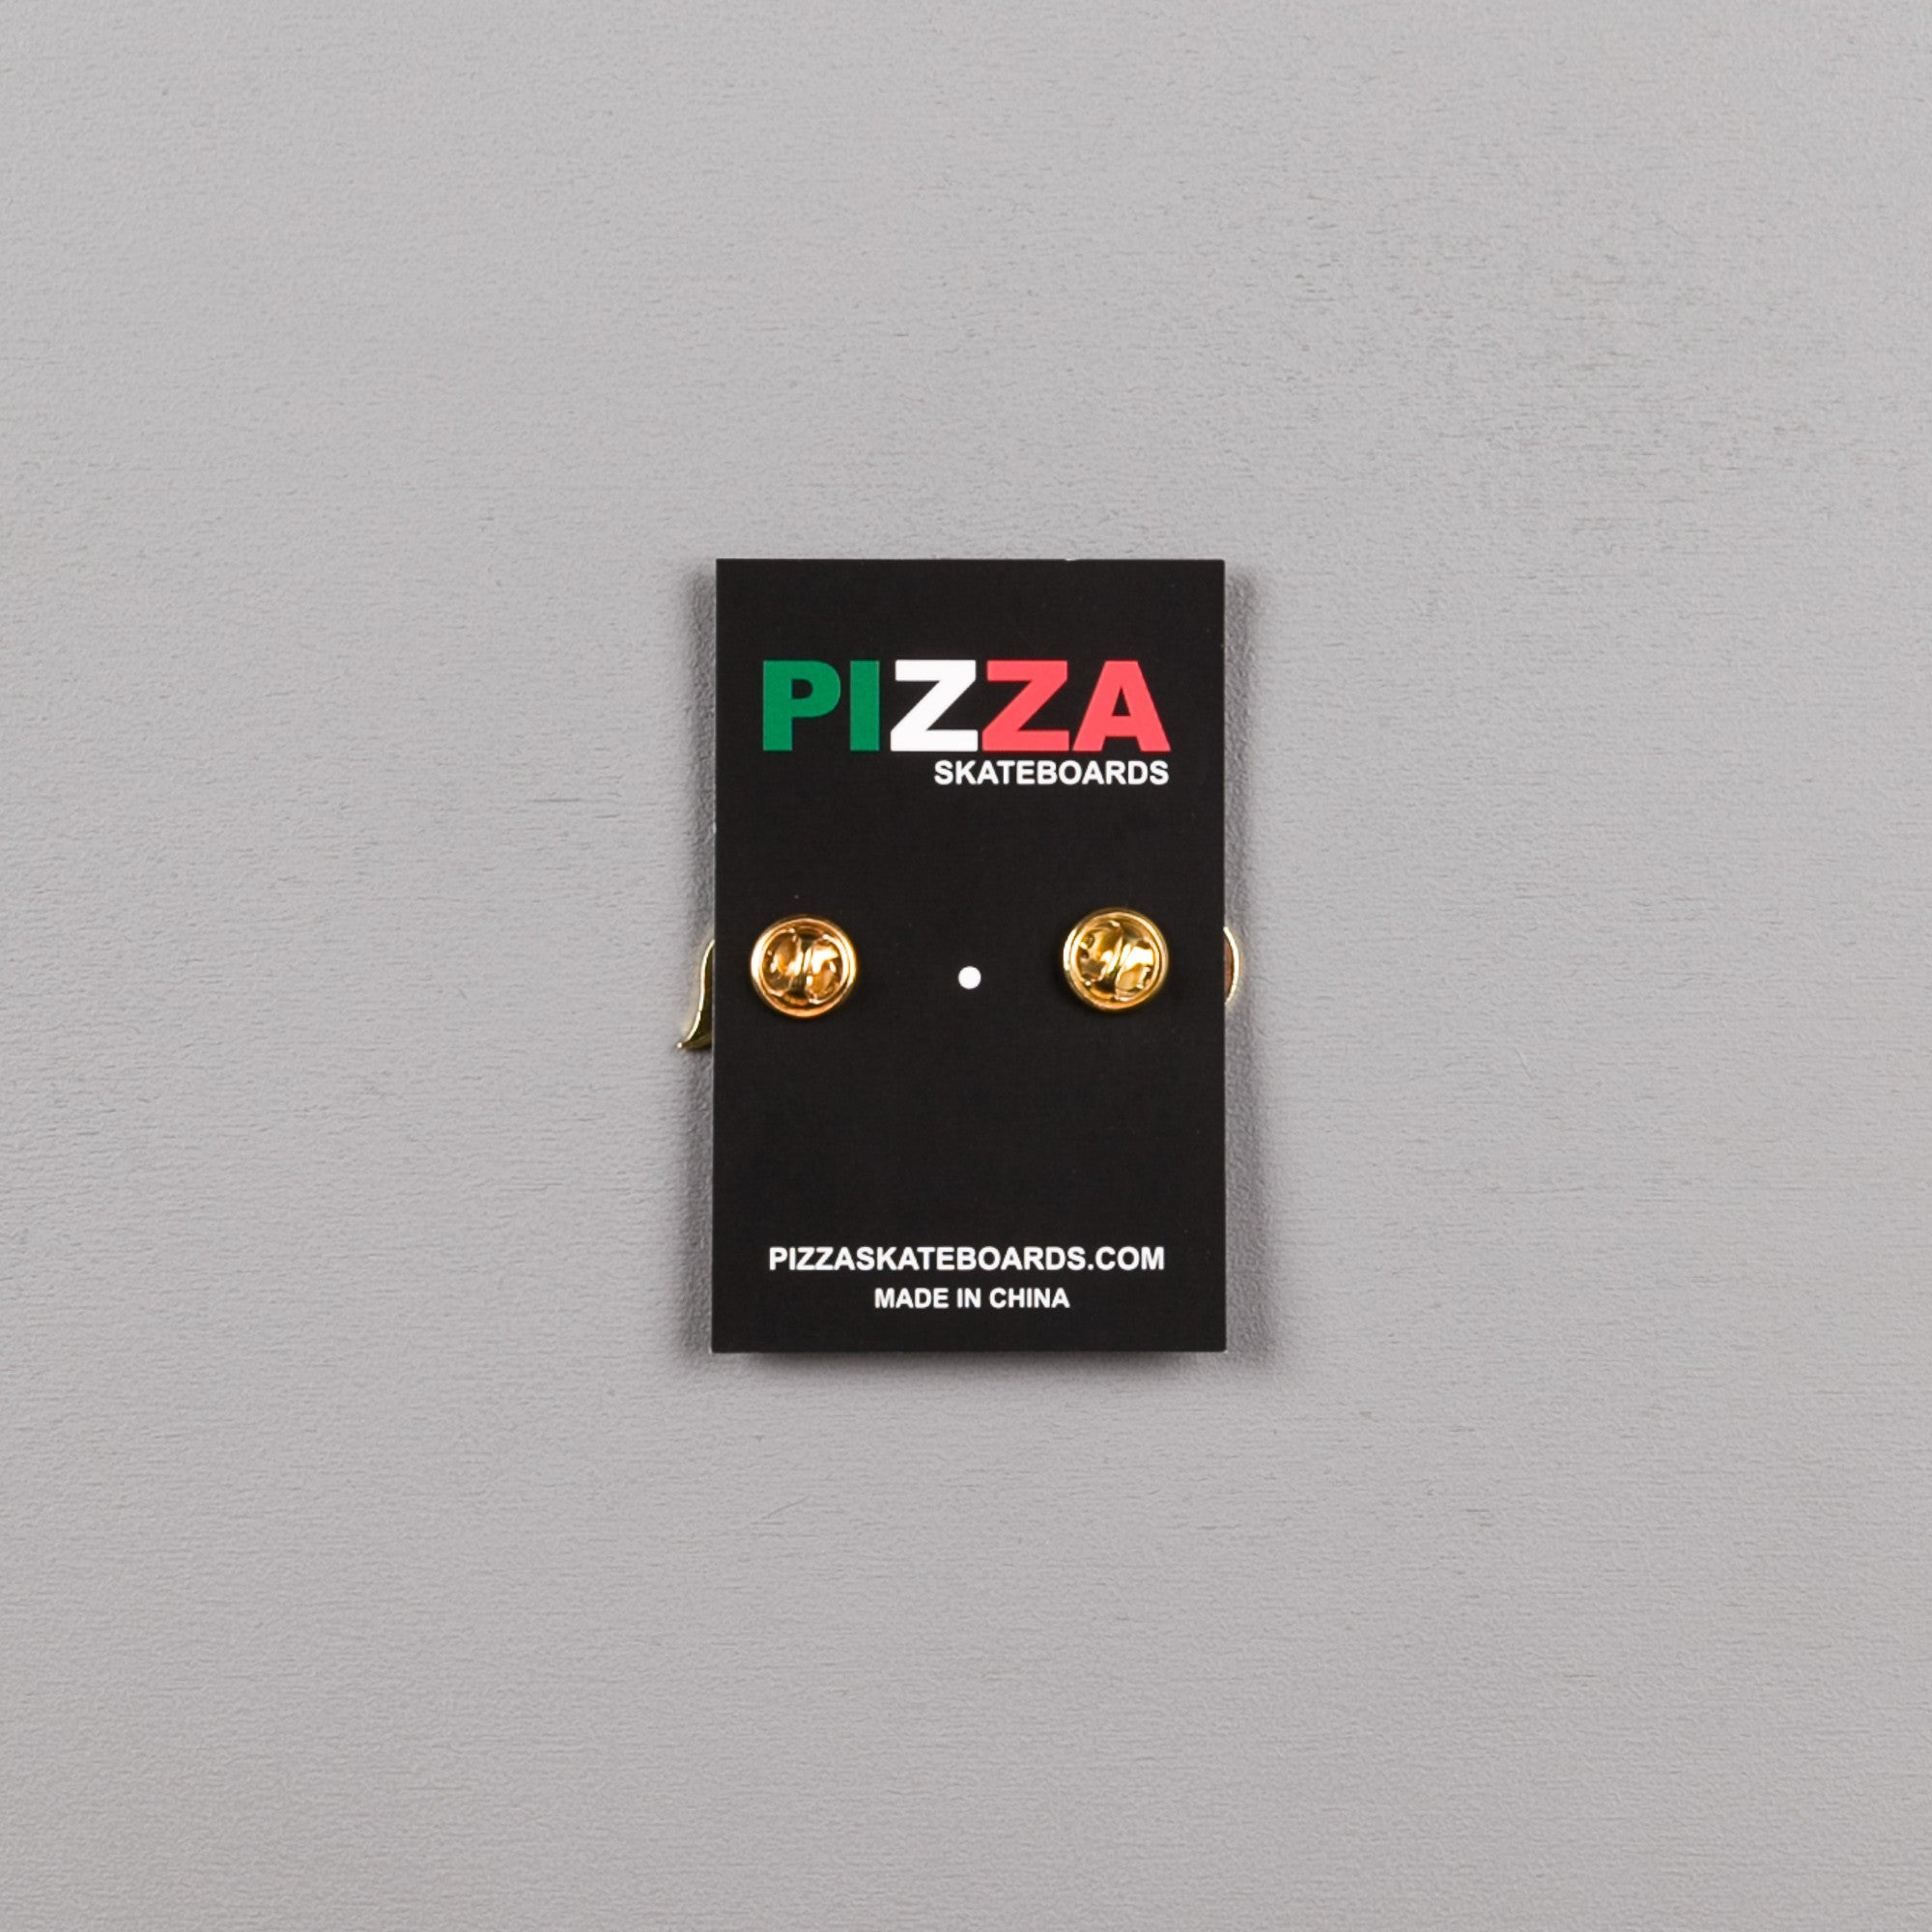 Pizza Skateboards Emoji Pin Badge - Blue